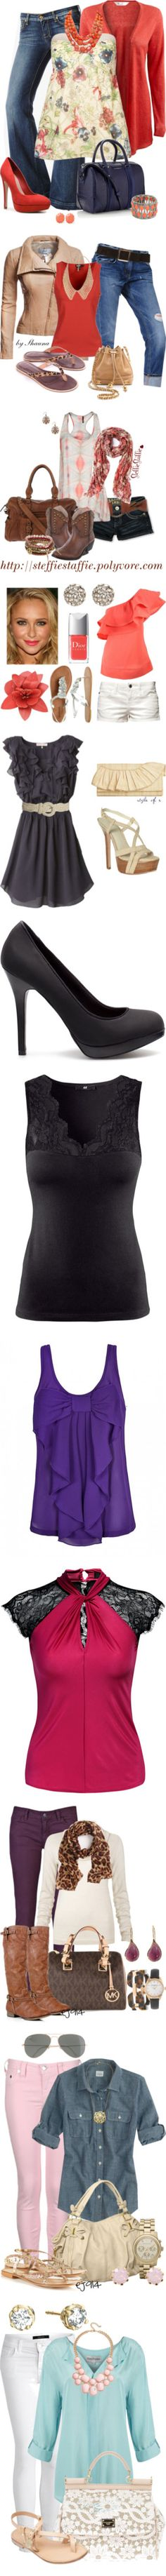 """""""xcvb"""" by karli49 ❤ liked on Polyvore"""